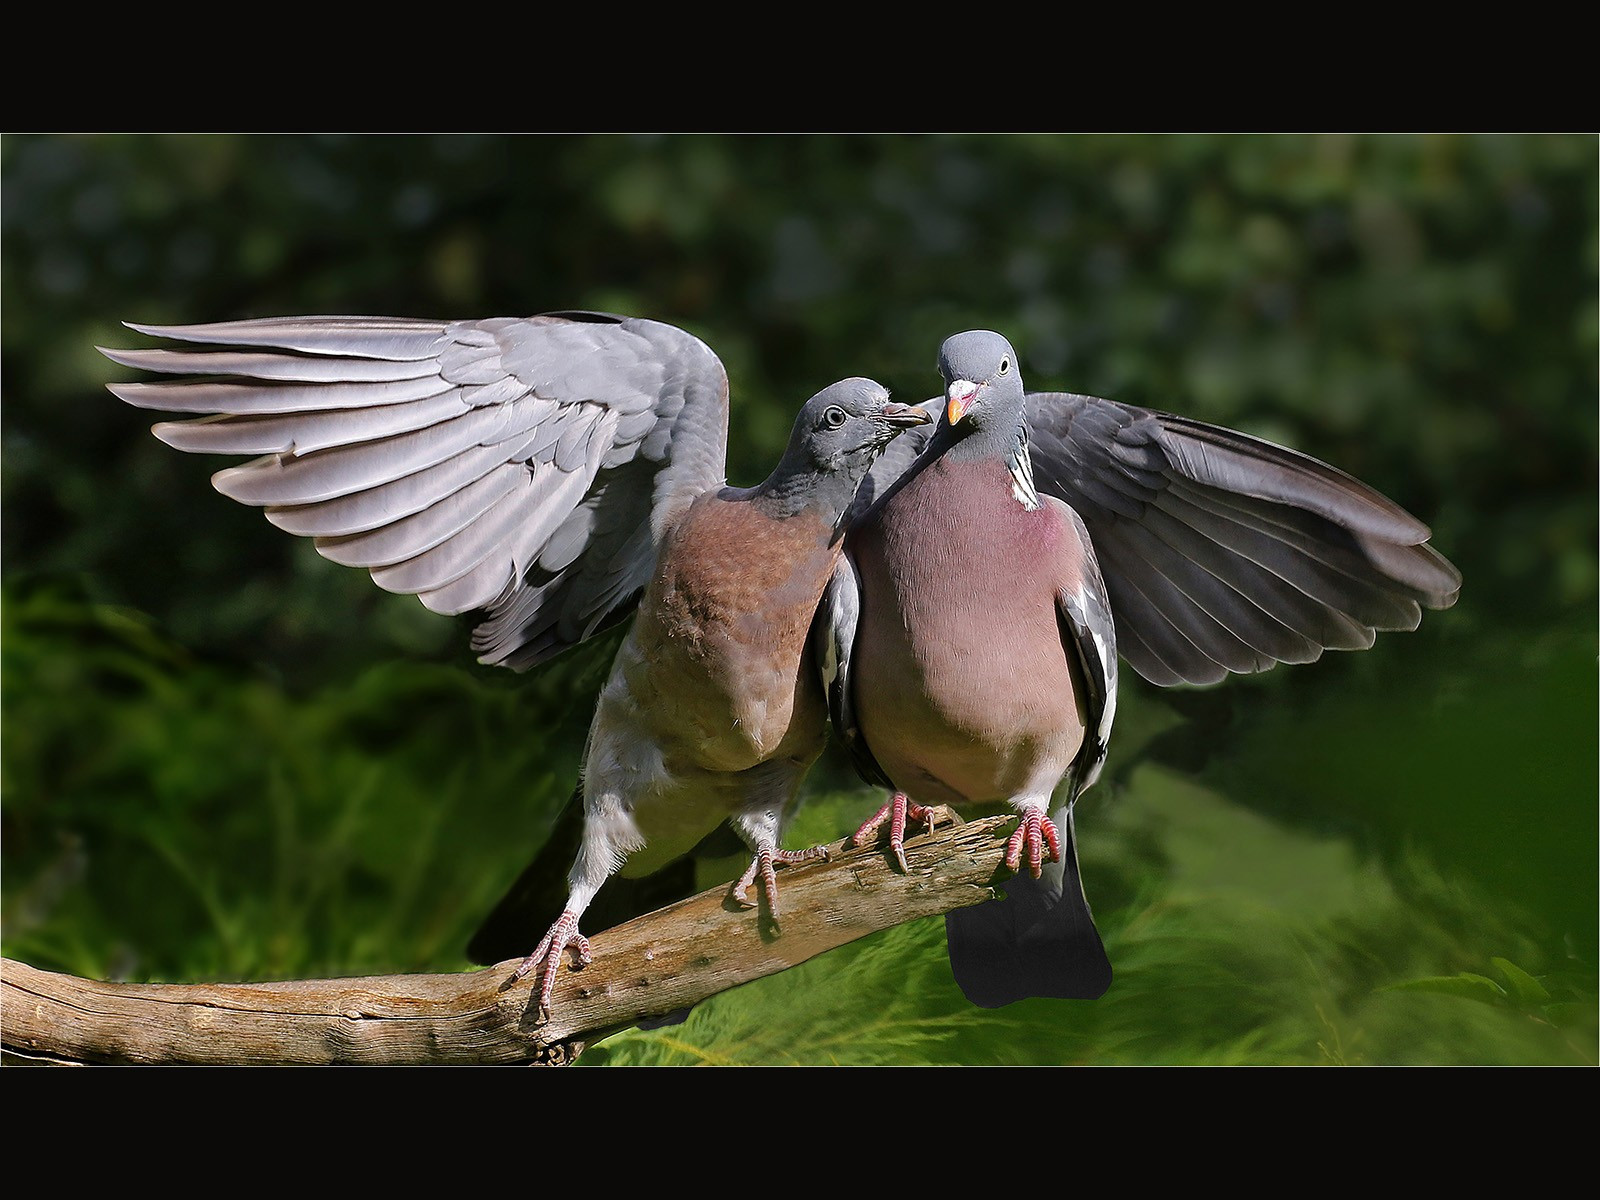 Young Wood Pigeon Begging Food